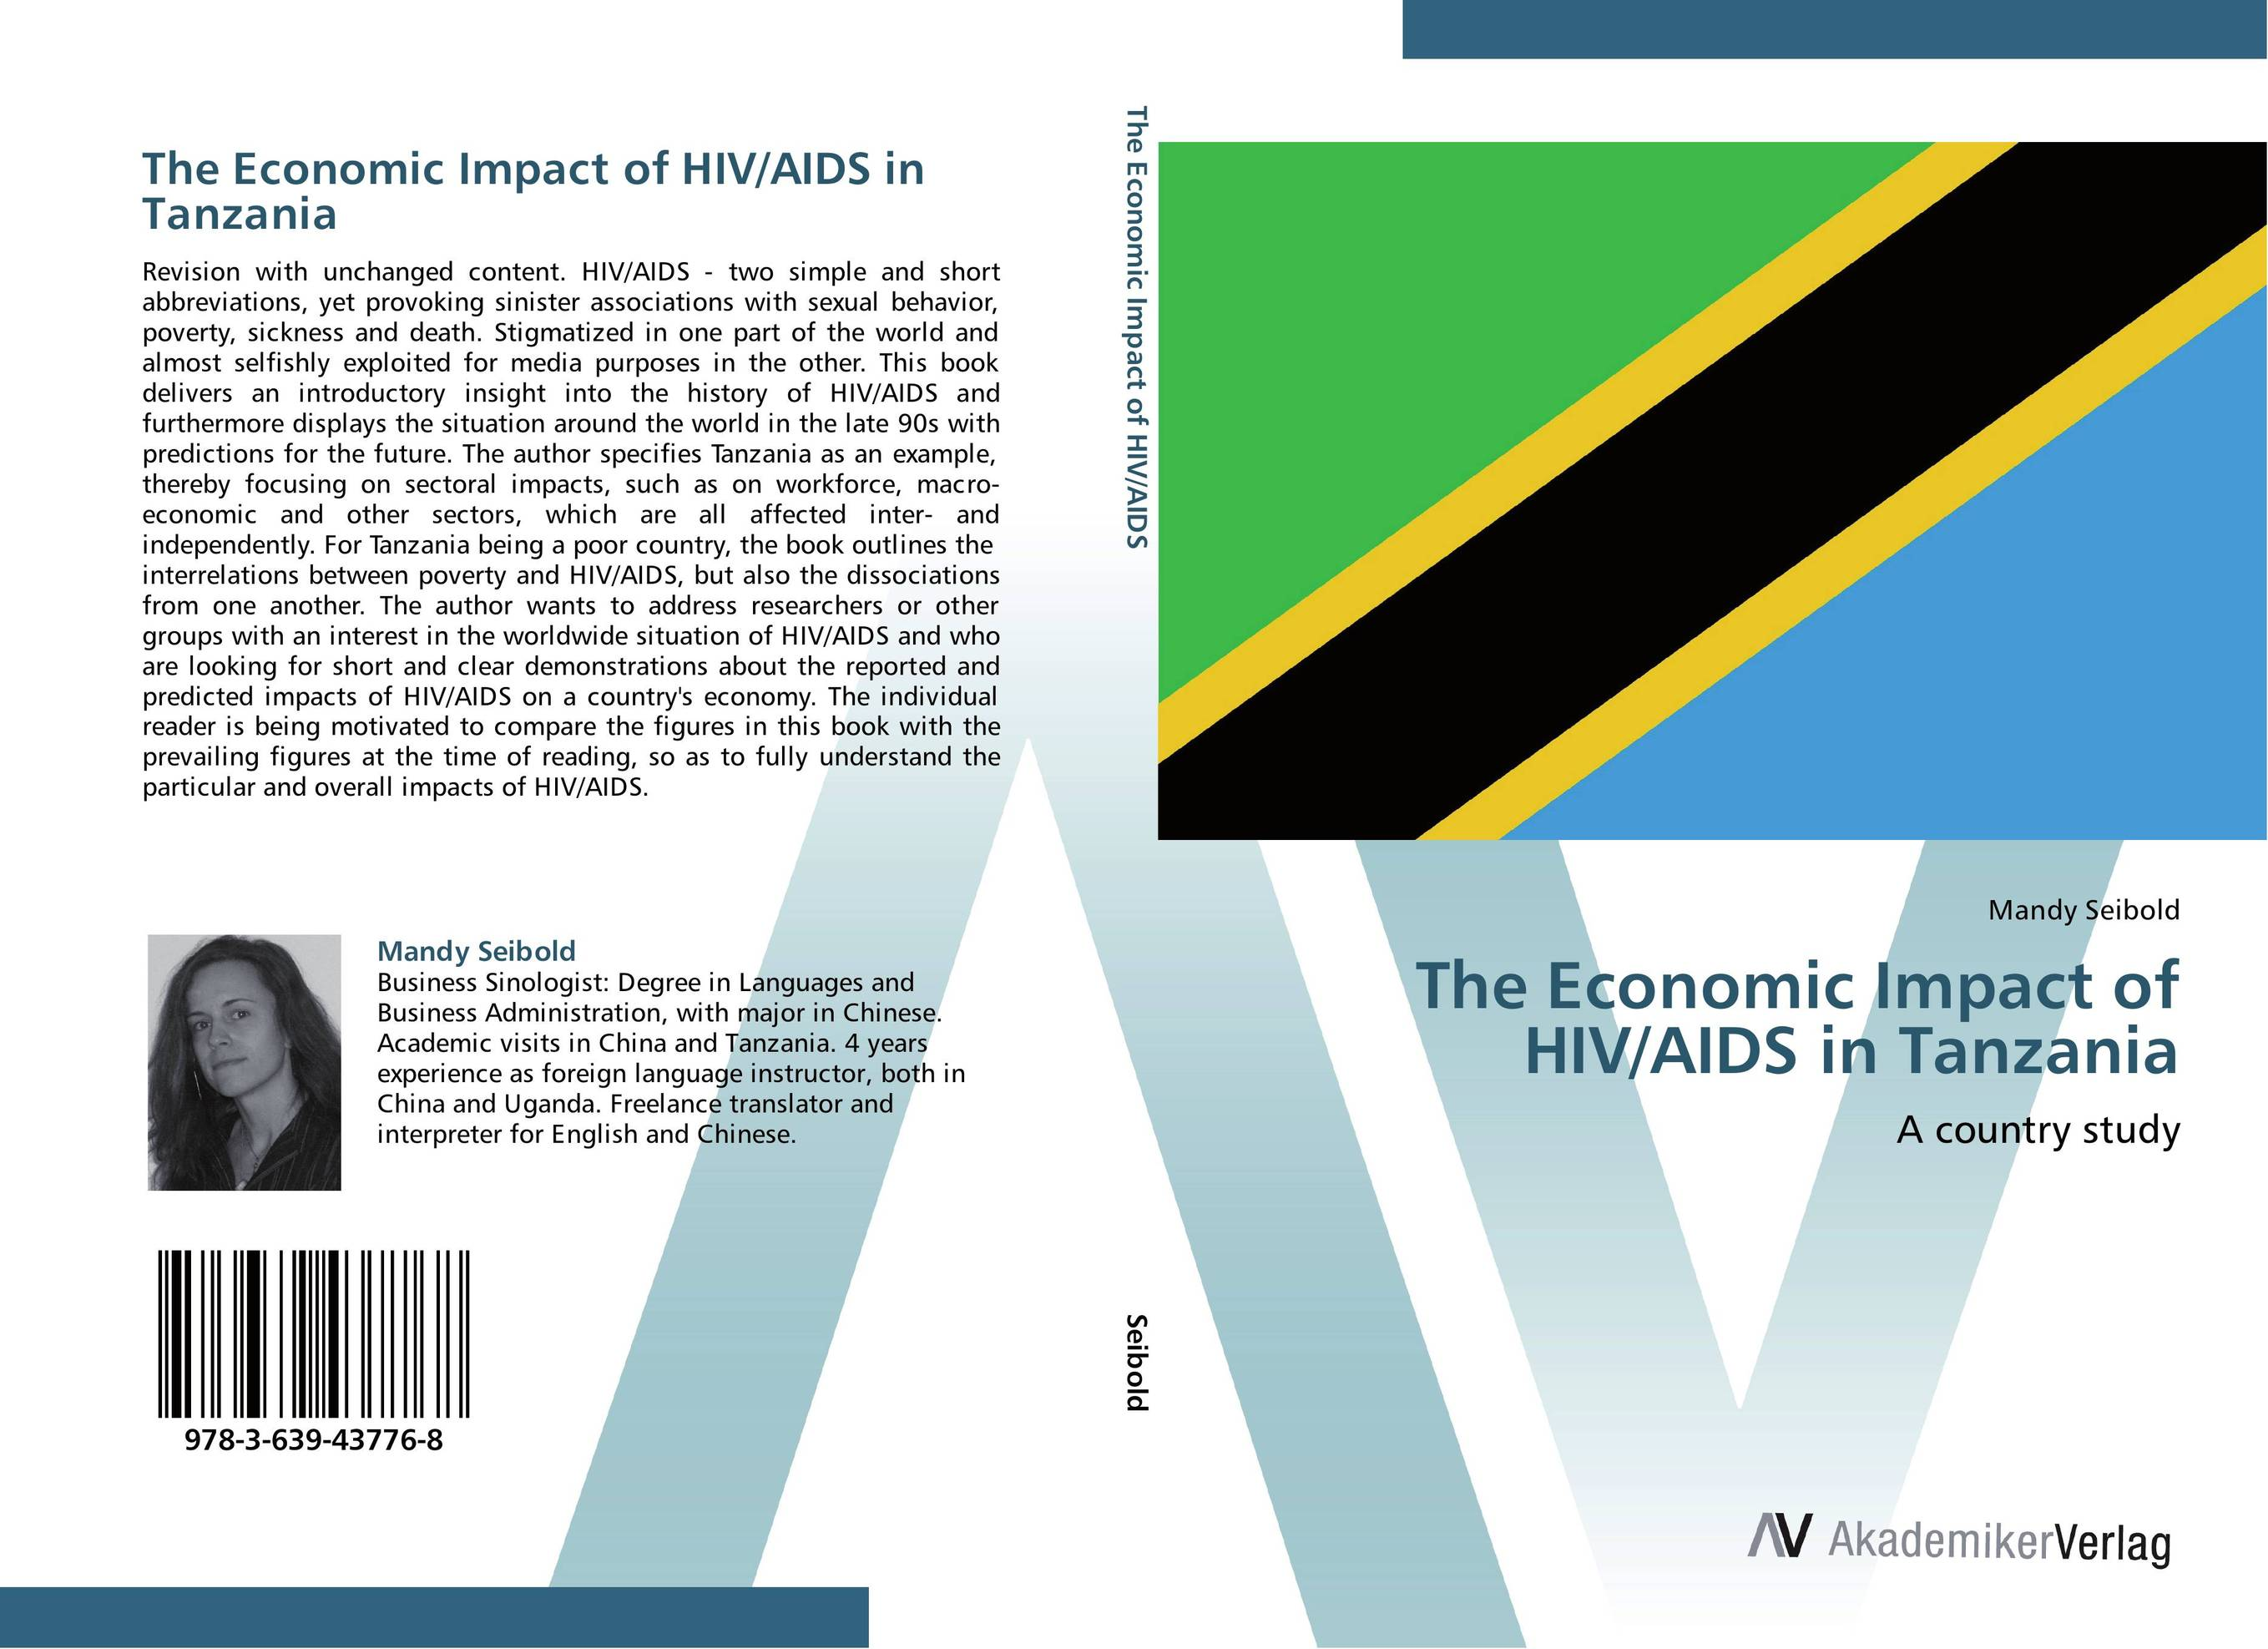 The Economic Impact of HIV/AIDS in Tanzania купить